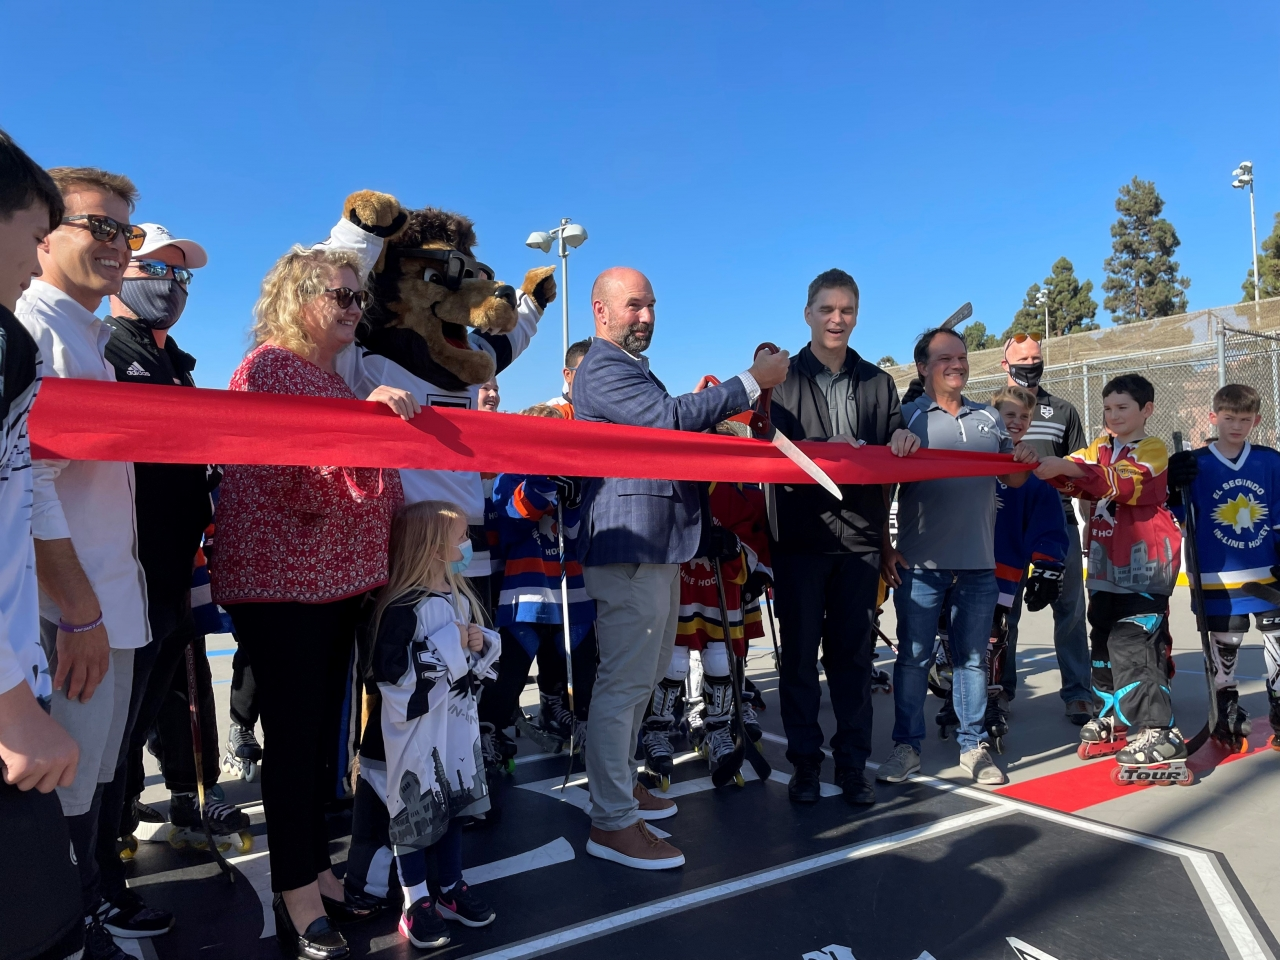 LA Kings President and Hockey Hall of Famer Luc Robitaille (right) and El Segundo Mayor Pro Tem Chris Pimentel (left) officially cut the ribbon to open the newly completed roller hockey rink in El Segundo on August 26, 2021.